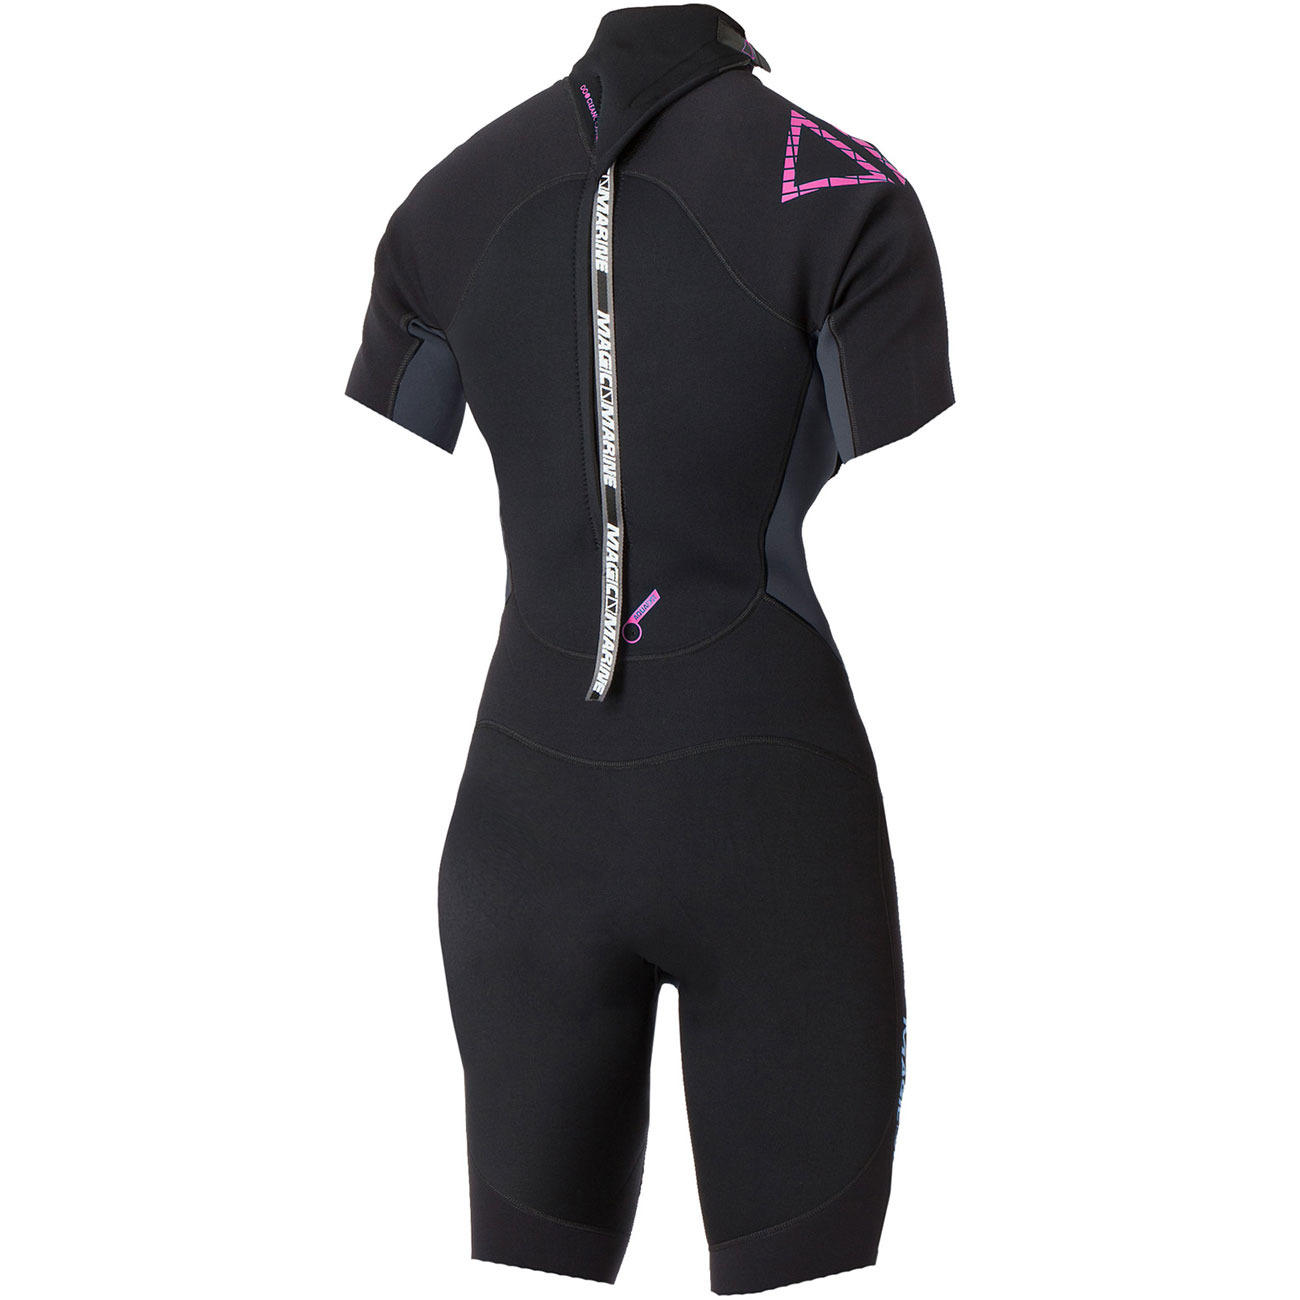 BRAND SHORTY3/2 back-zip | women